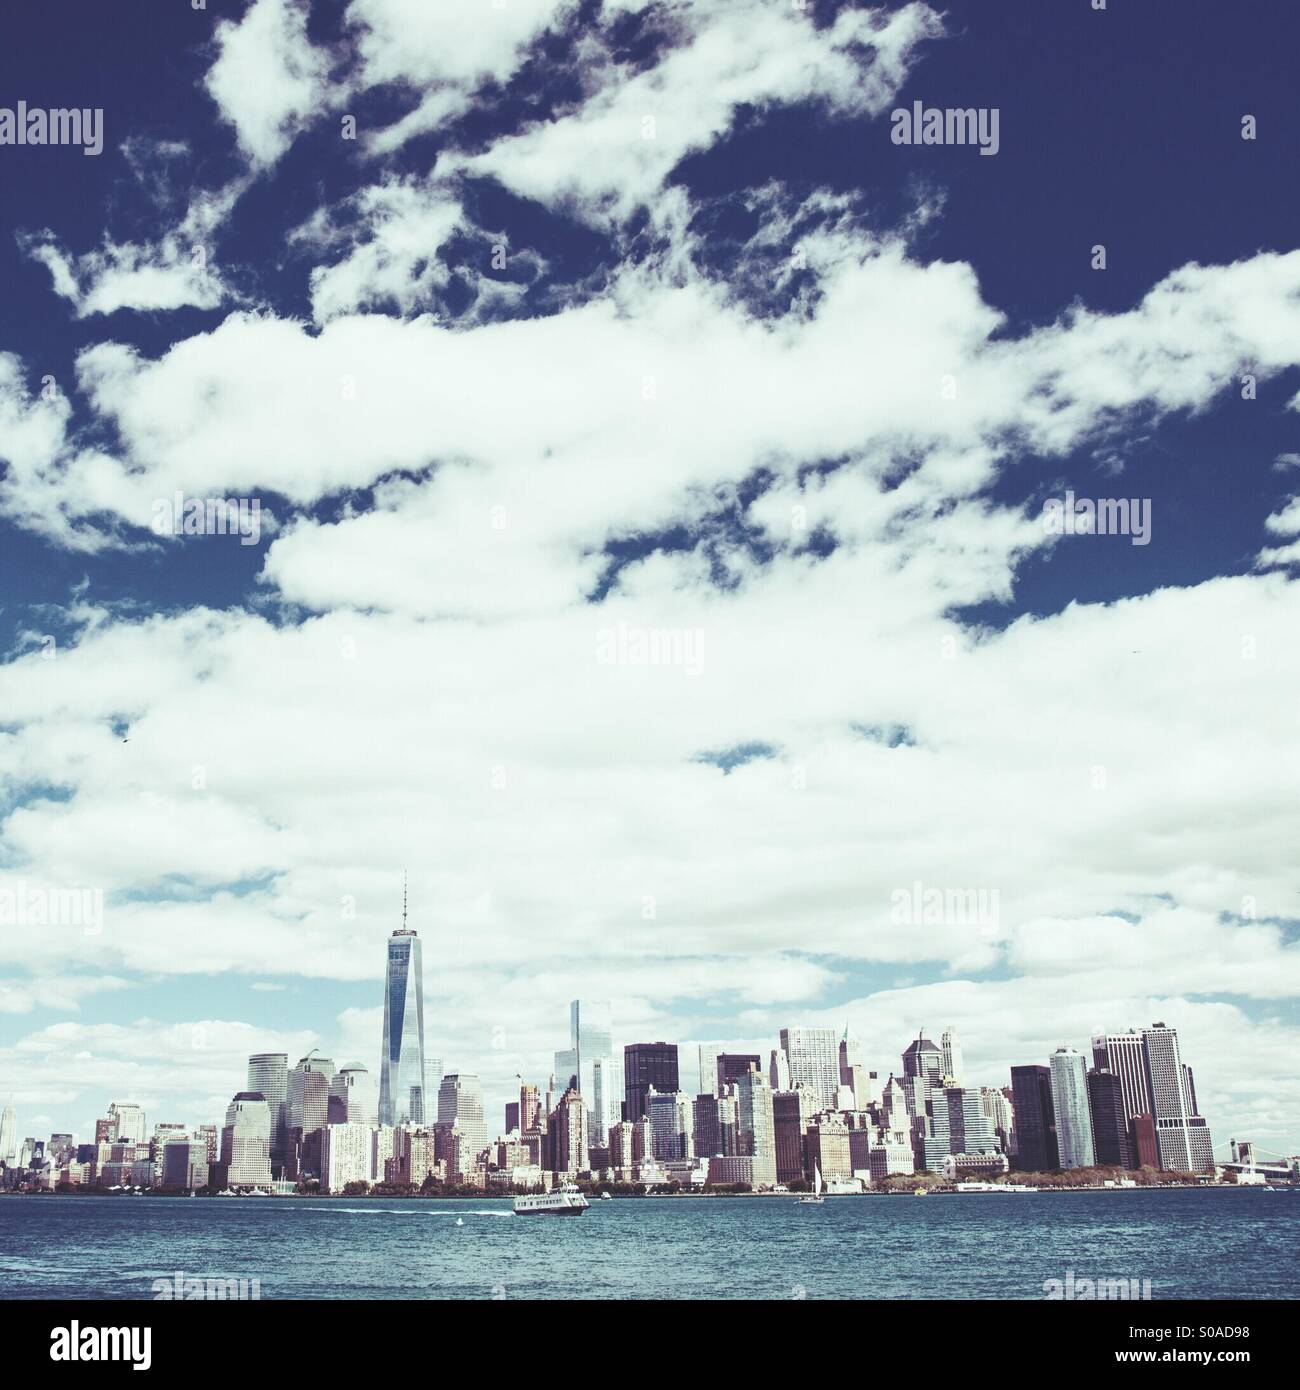 New York City, Downtown Manhattan skyline - Stock Image